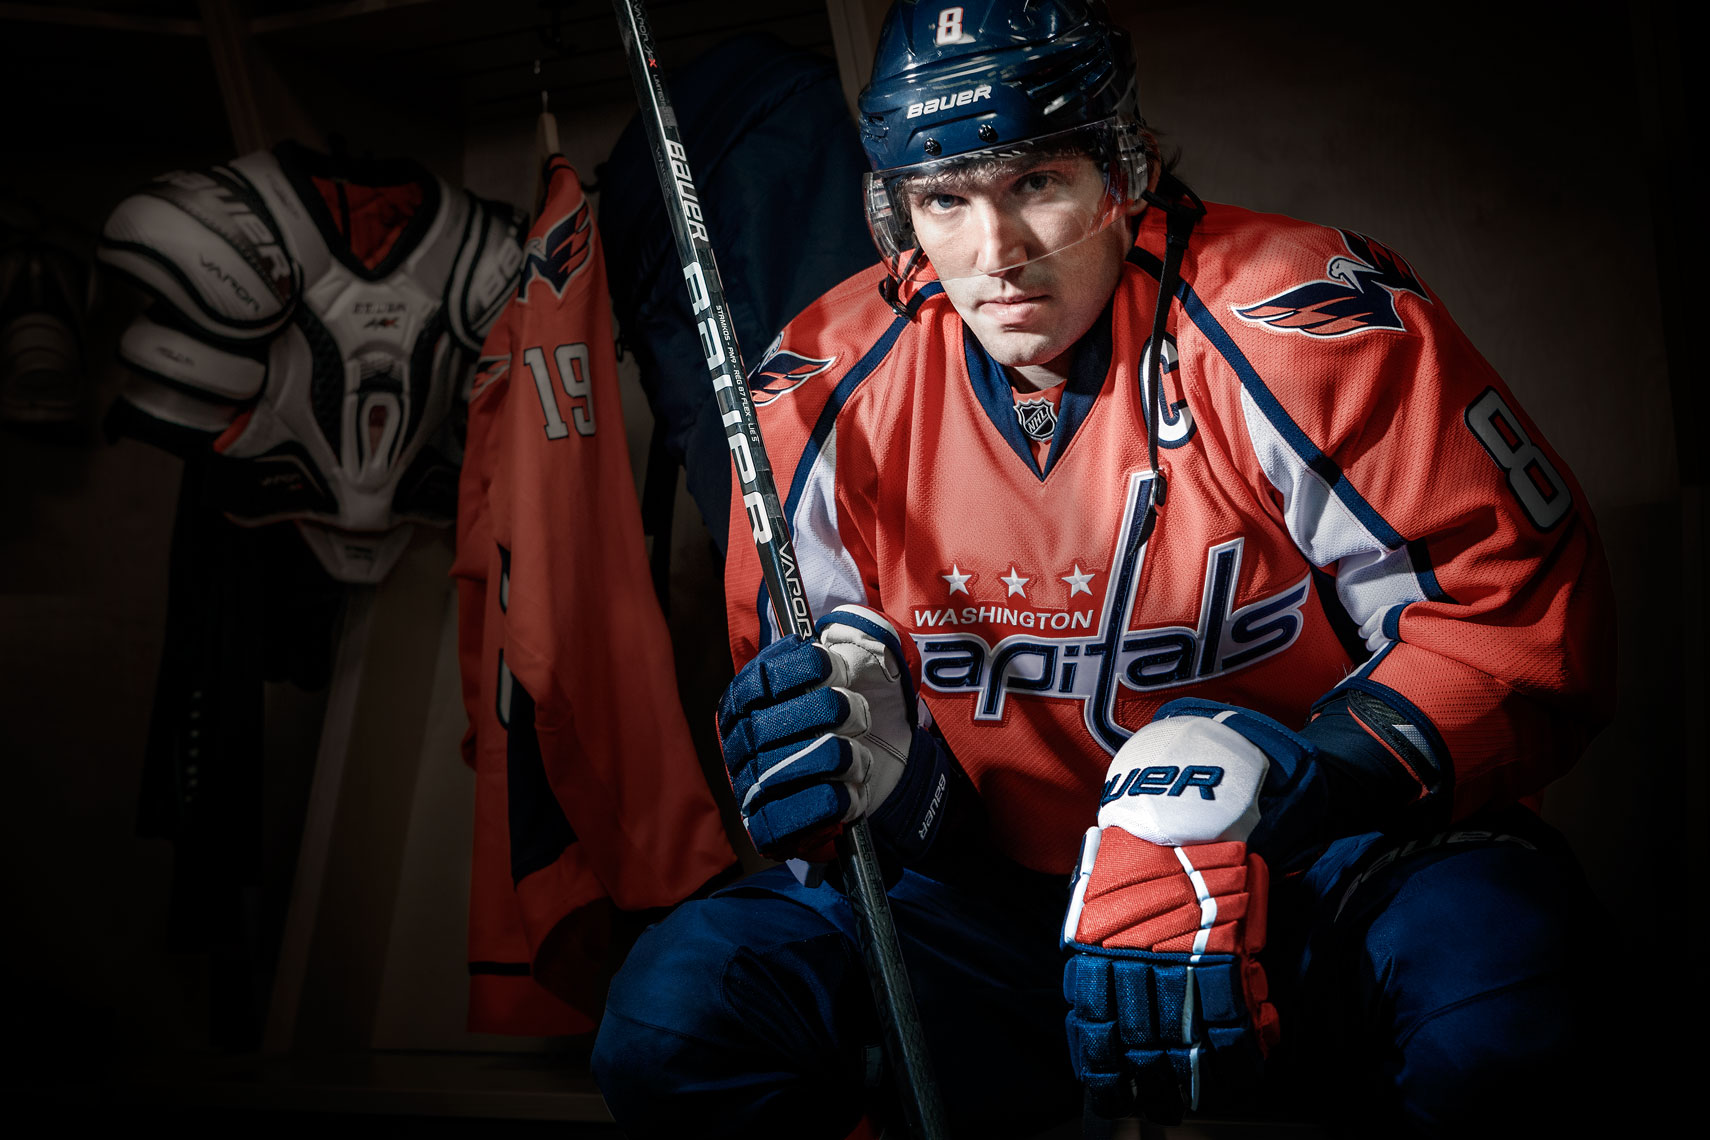 National Hockey League: Washington Capitals winger Alexander Ovechkin